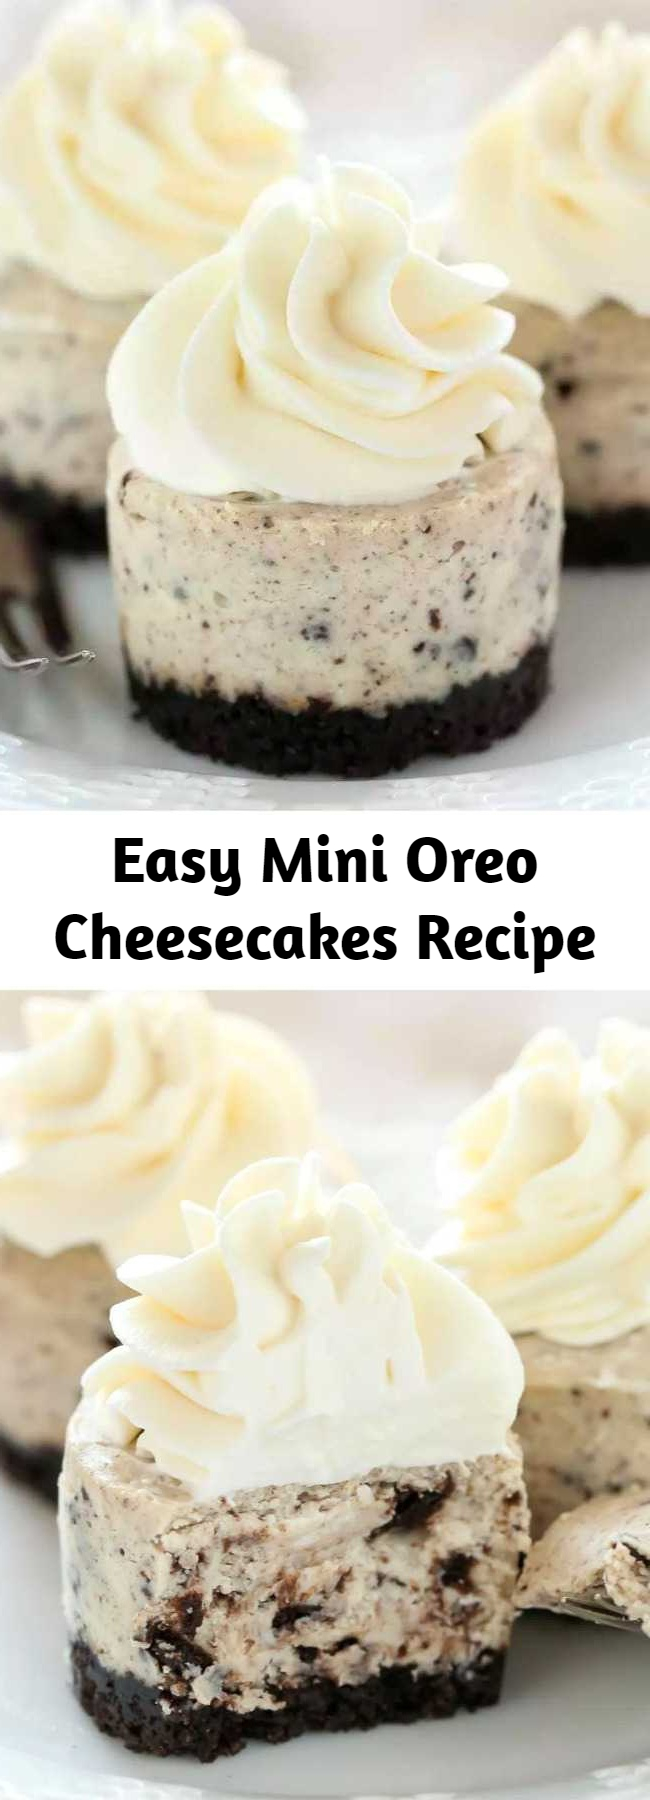 Easy Mini Oreo Cheesecakes Recipe - An easy two ingredient Oreo crust topped with a smooth and creamy Oreo cheesecake filling. These Mini Oreo Cheesecakes make a perfect dessert for any time of year!